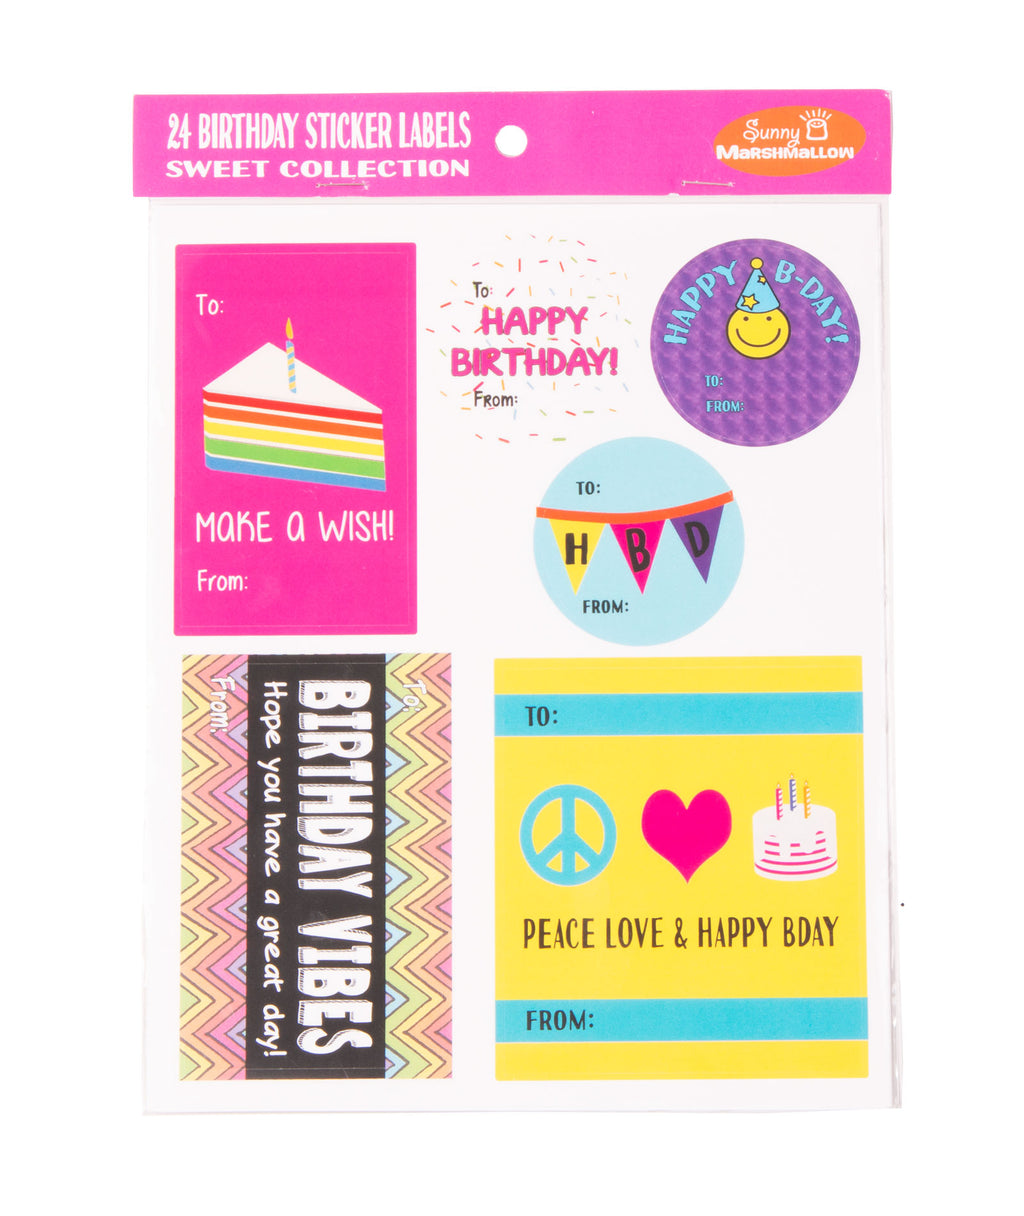 Sunny Marshmallow Birthday Sweets Sticker Labels